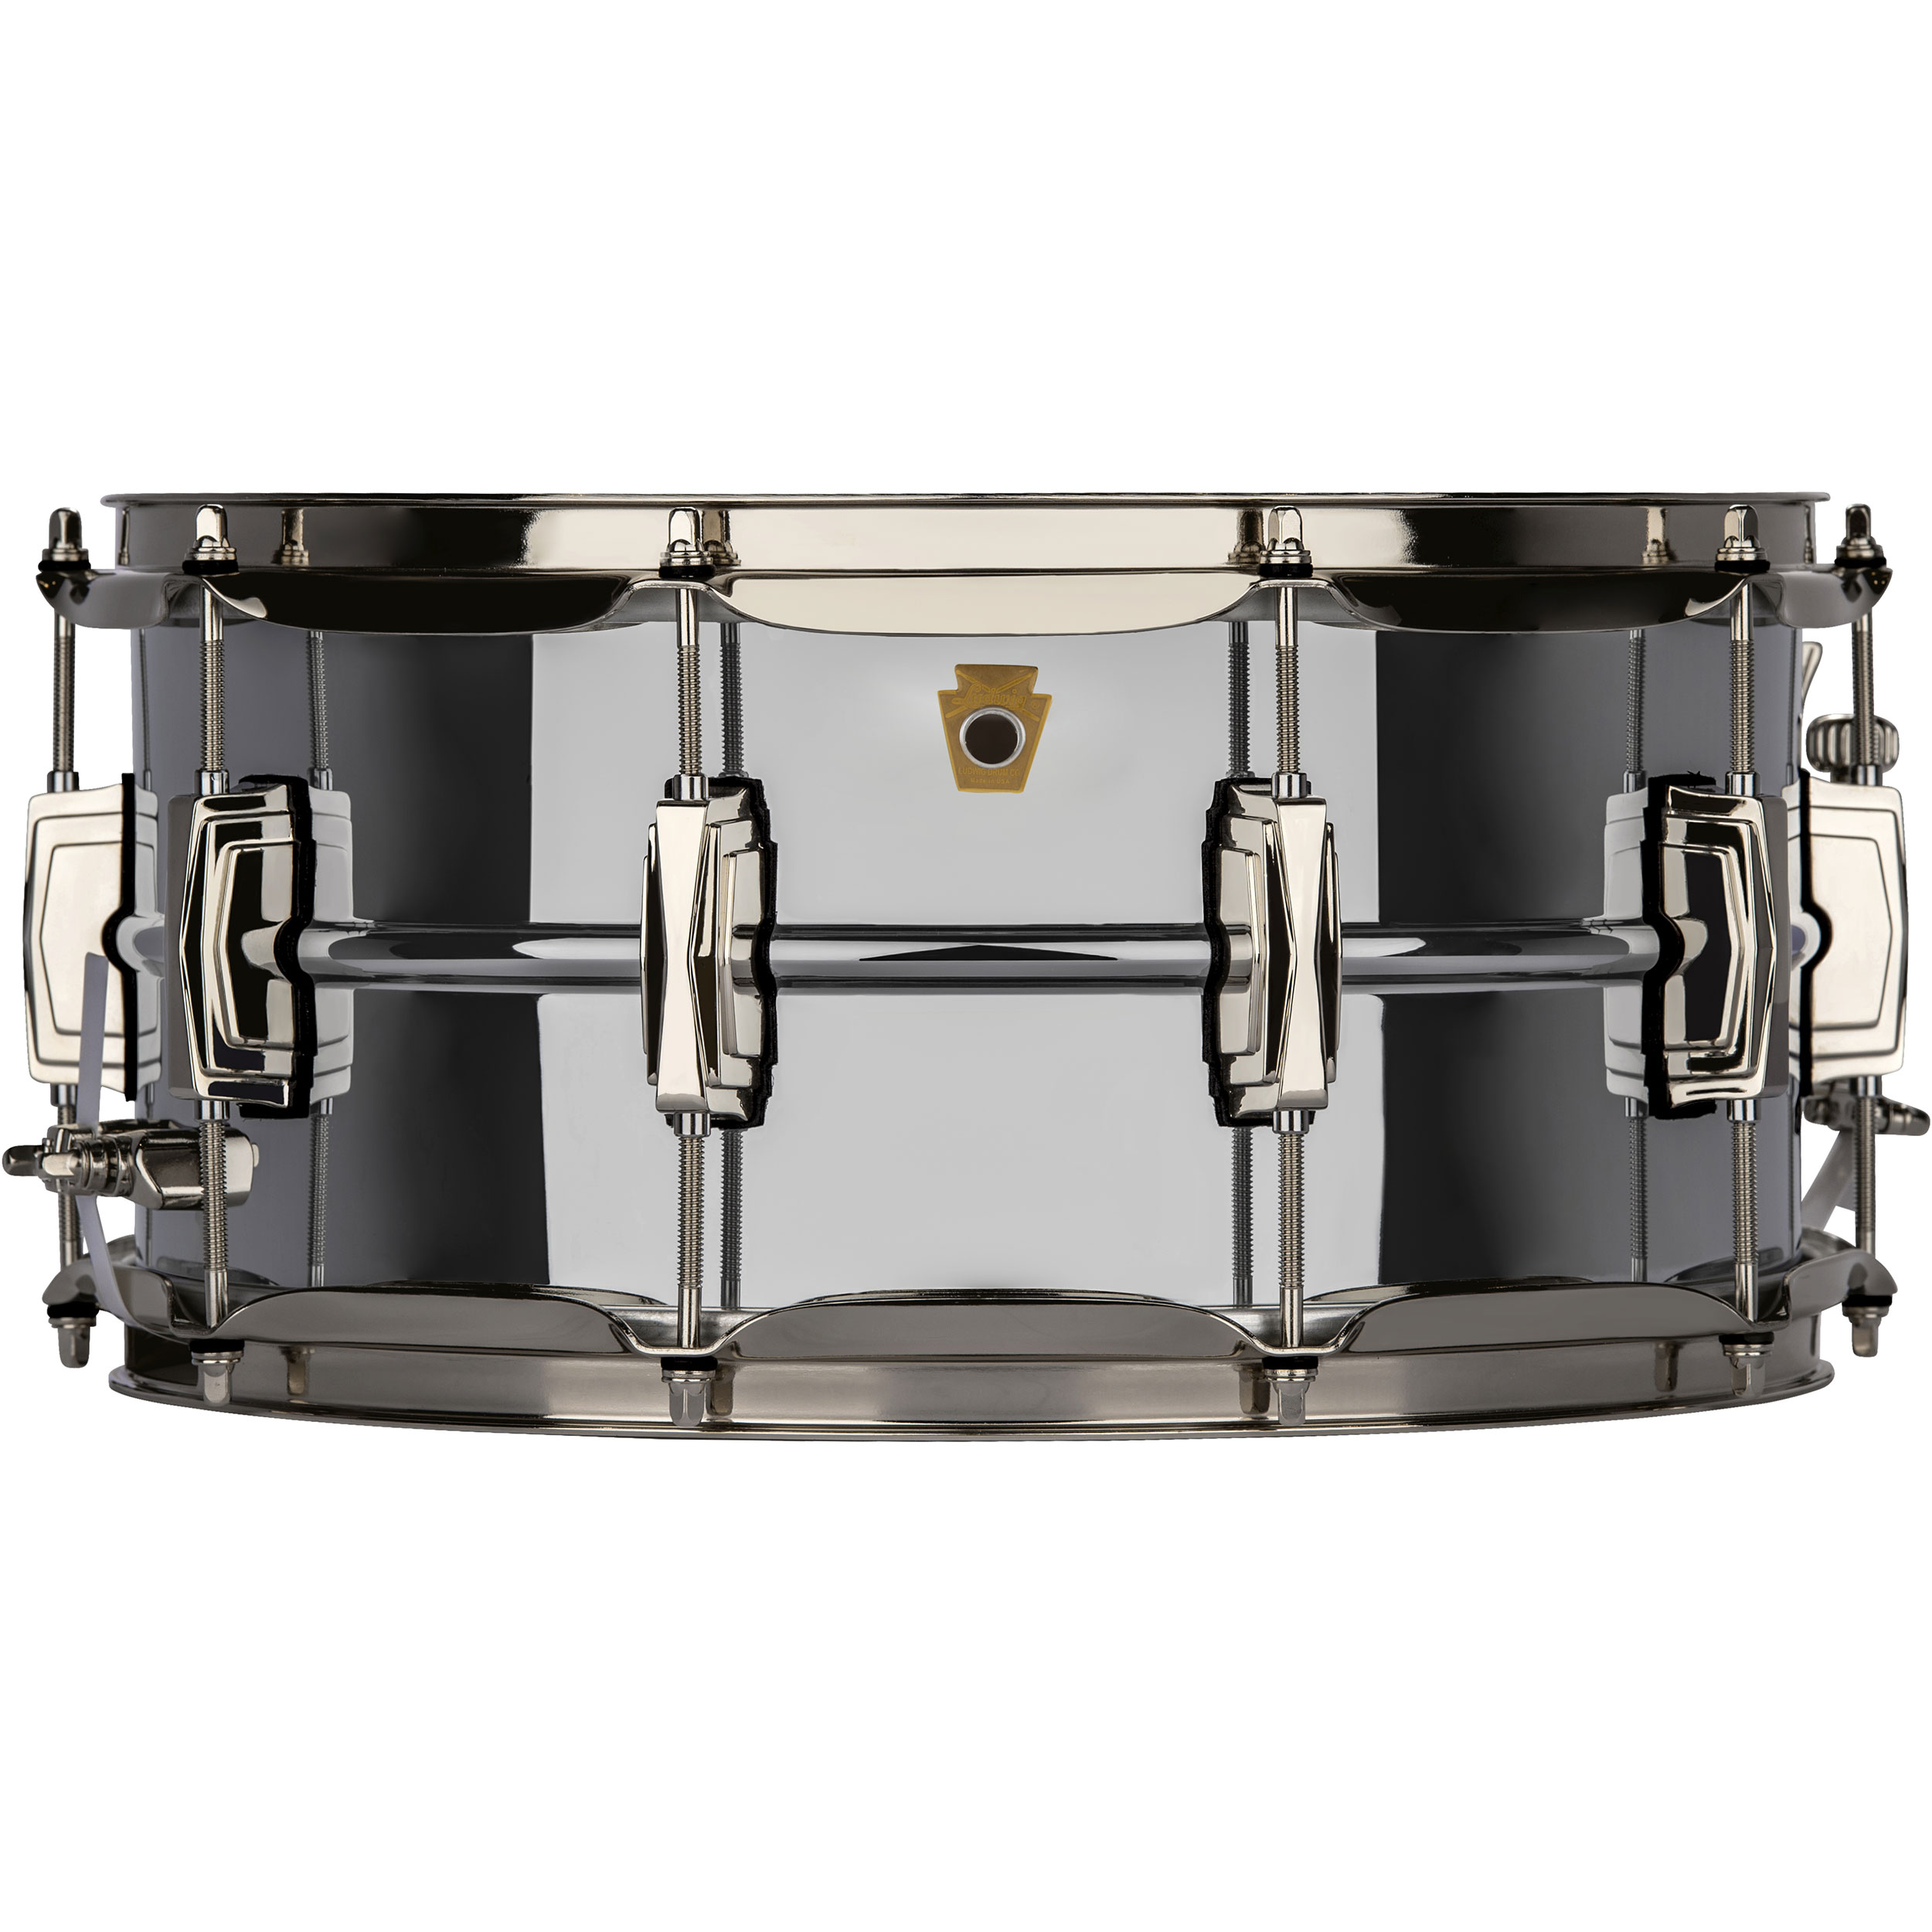 """Ludwig 6.5"""" x 14"""" Chrome Plated Brass """"Super Ludwig"""" Snare Drum with Nickel Hardware"""